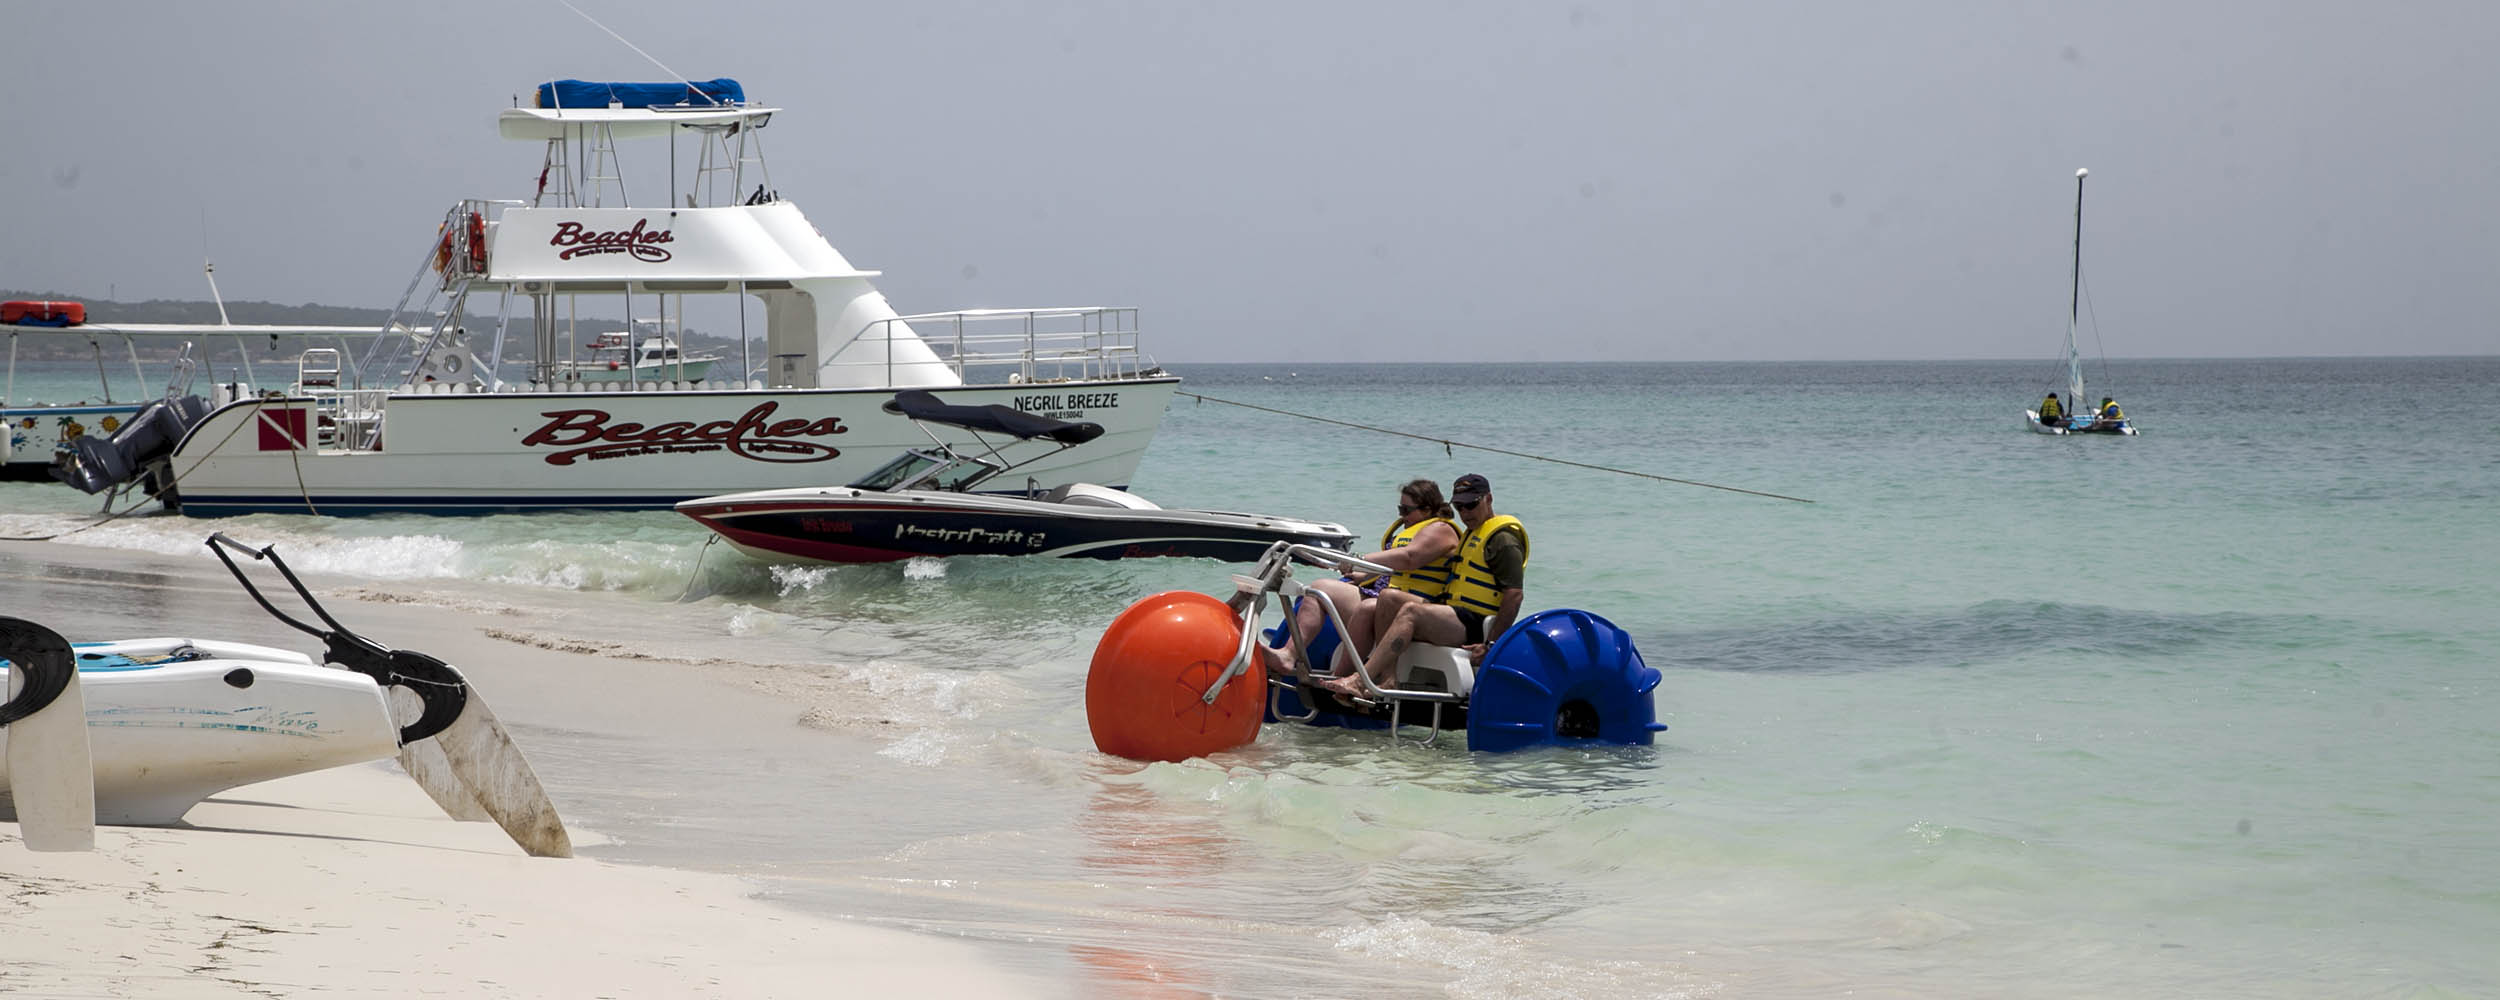 SBeaches Water Sports - Negril Jamaica